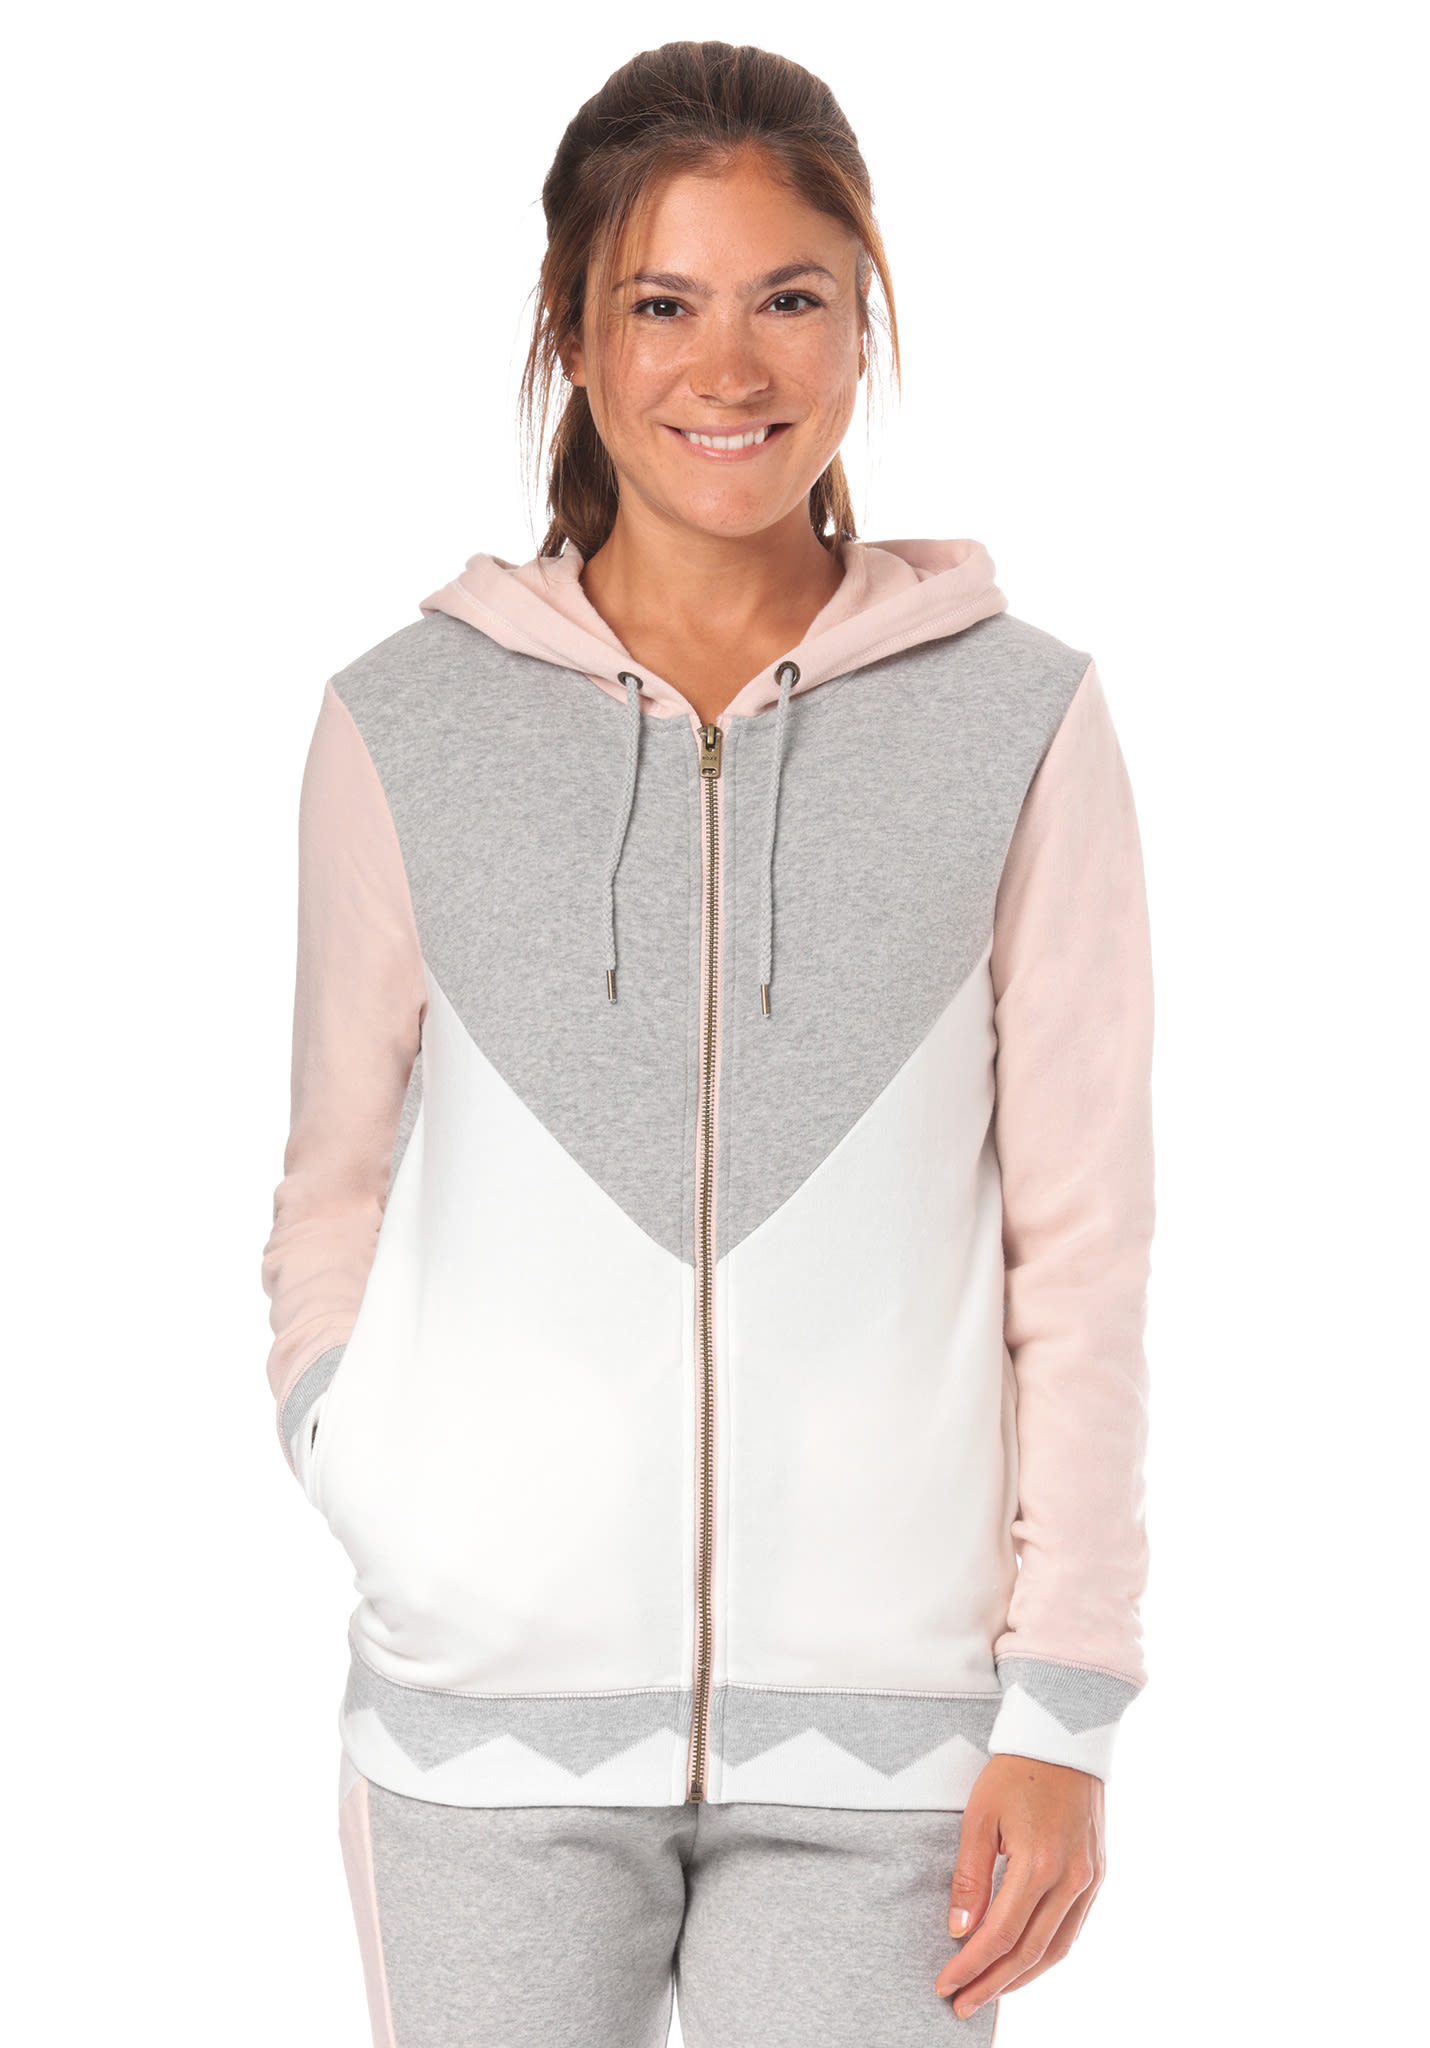 Women Planet Hooded For Jacket Multicolor Sacred Roxy Hour Sports zwq6a6